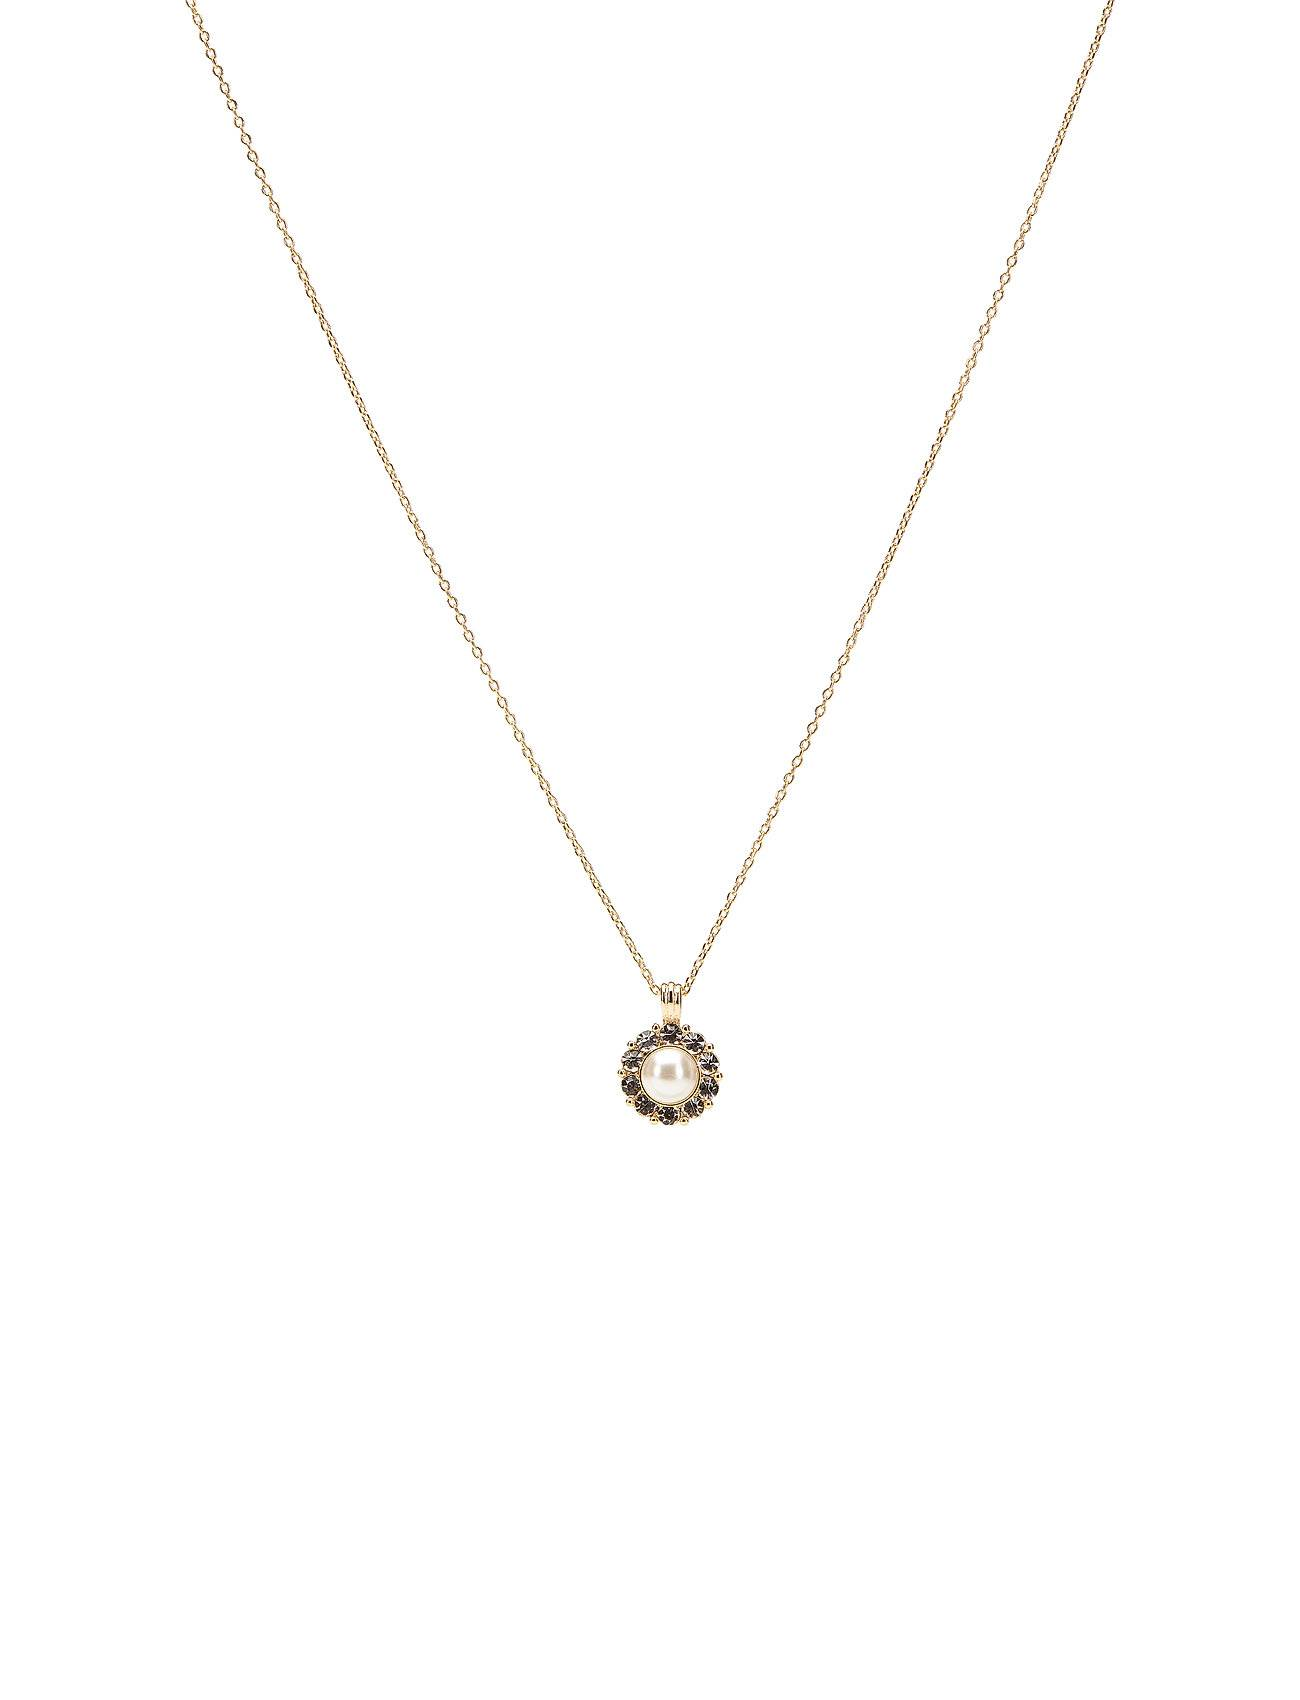 LILY AND ROSE Sofia Pearl Necklace - Ivory Accessories Jewellery Necklaces Dainty Necklaces Kulta LILY AND ROSE